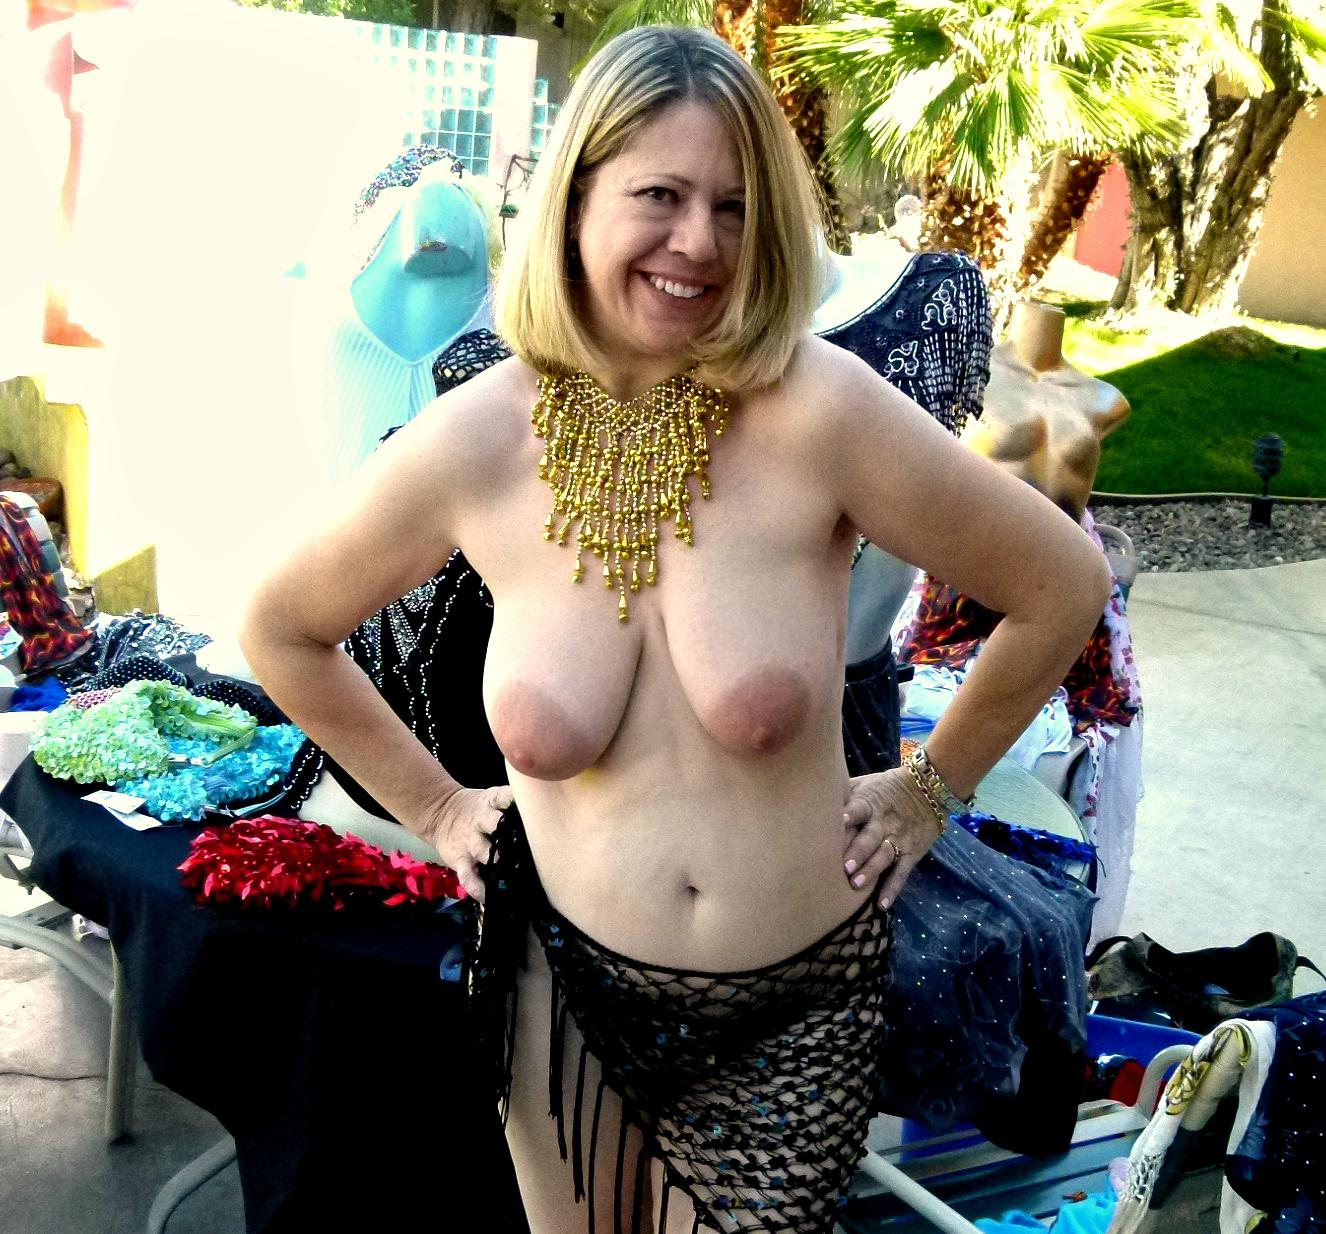 nudist fashion Anne Nix the nudist fashion designer will be at Terra Cotta Inn Mon-Wed May